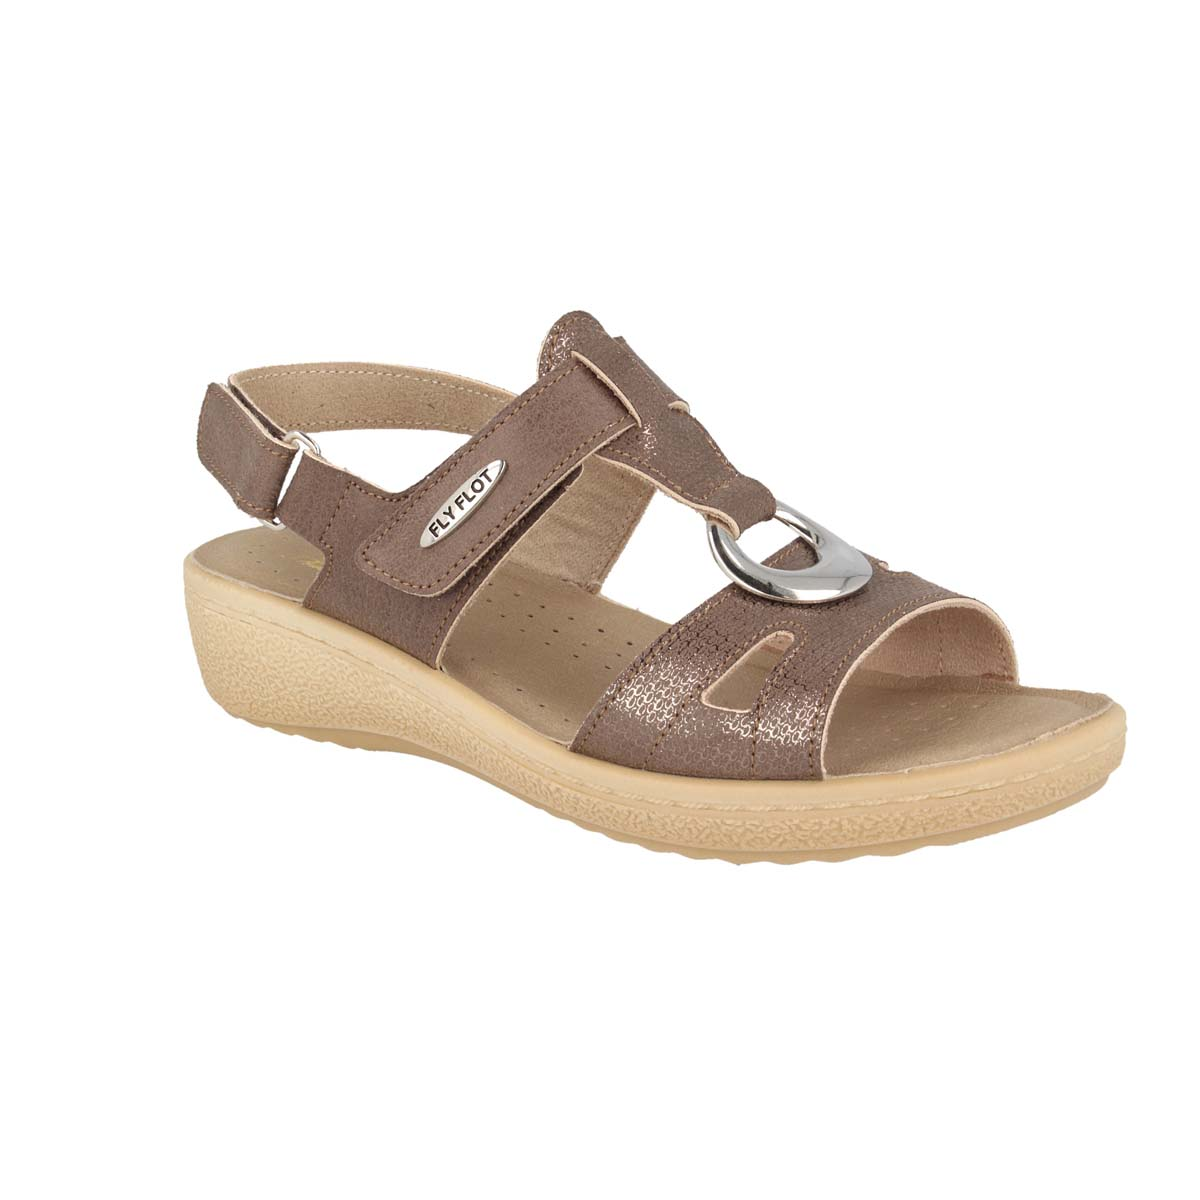 See photos Cloth Woman Sandal Taupe (55B483B)